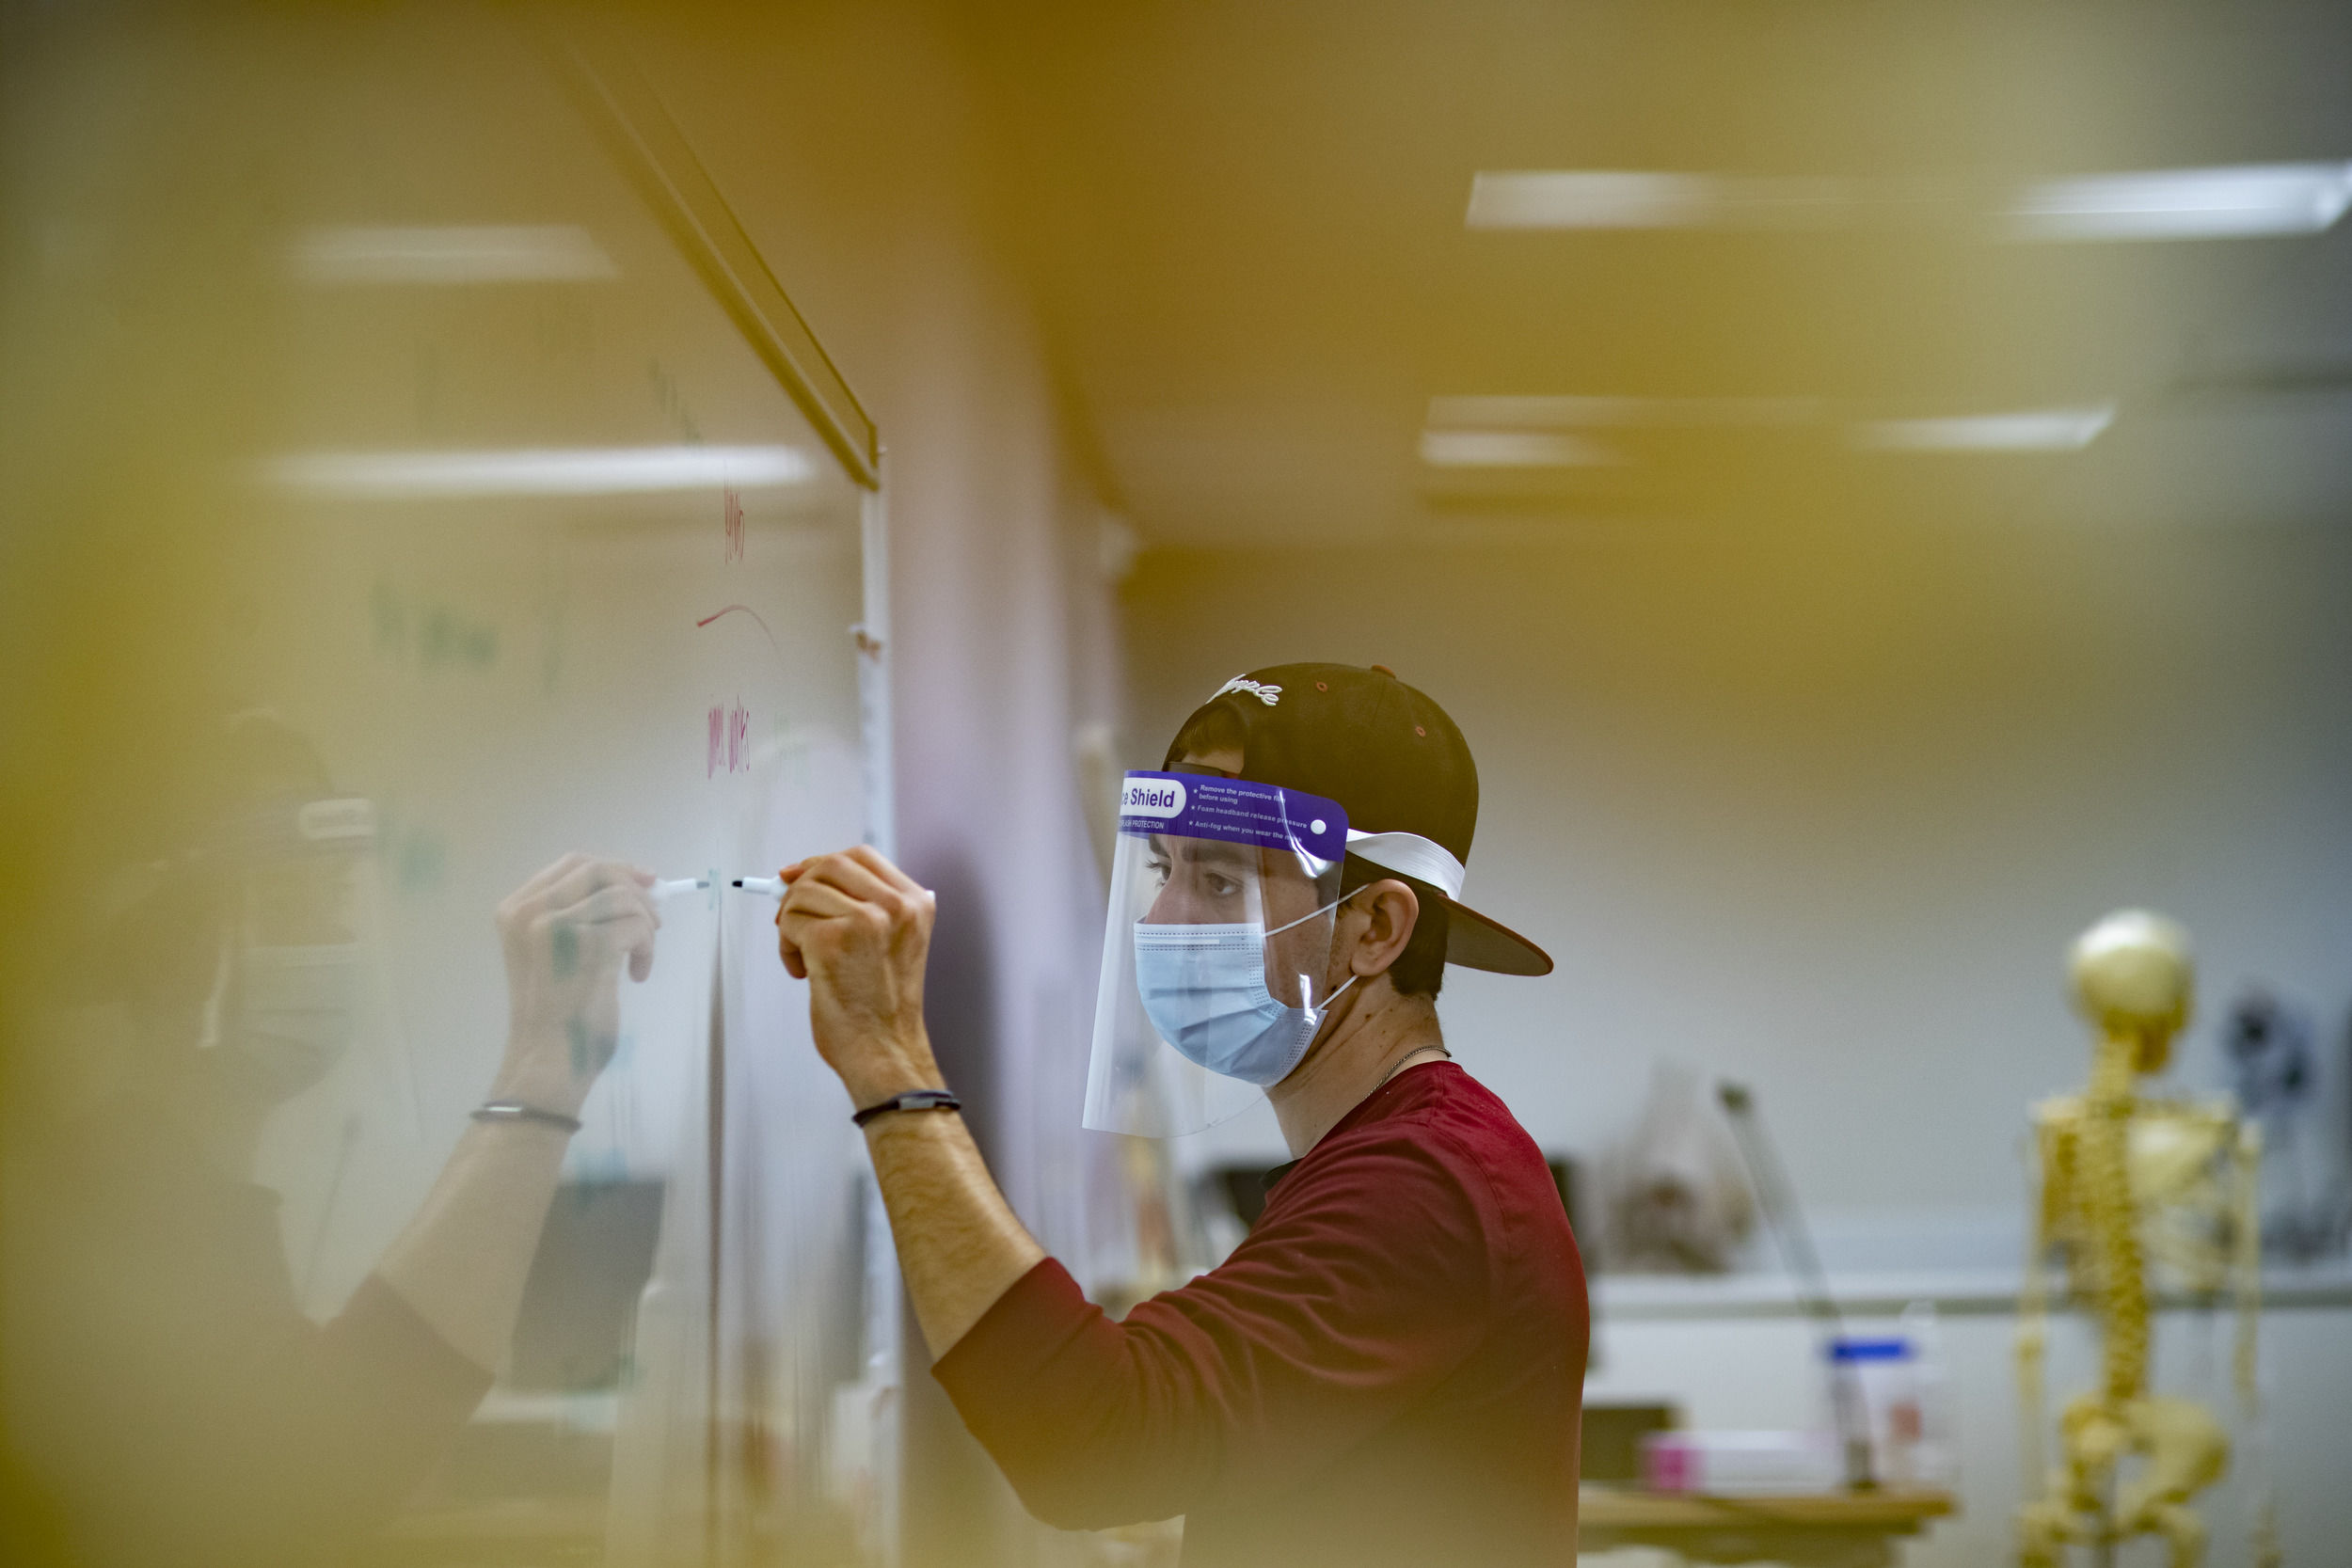 A College of Public Health student writes on a white board during an athletic training class.